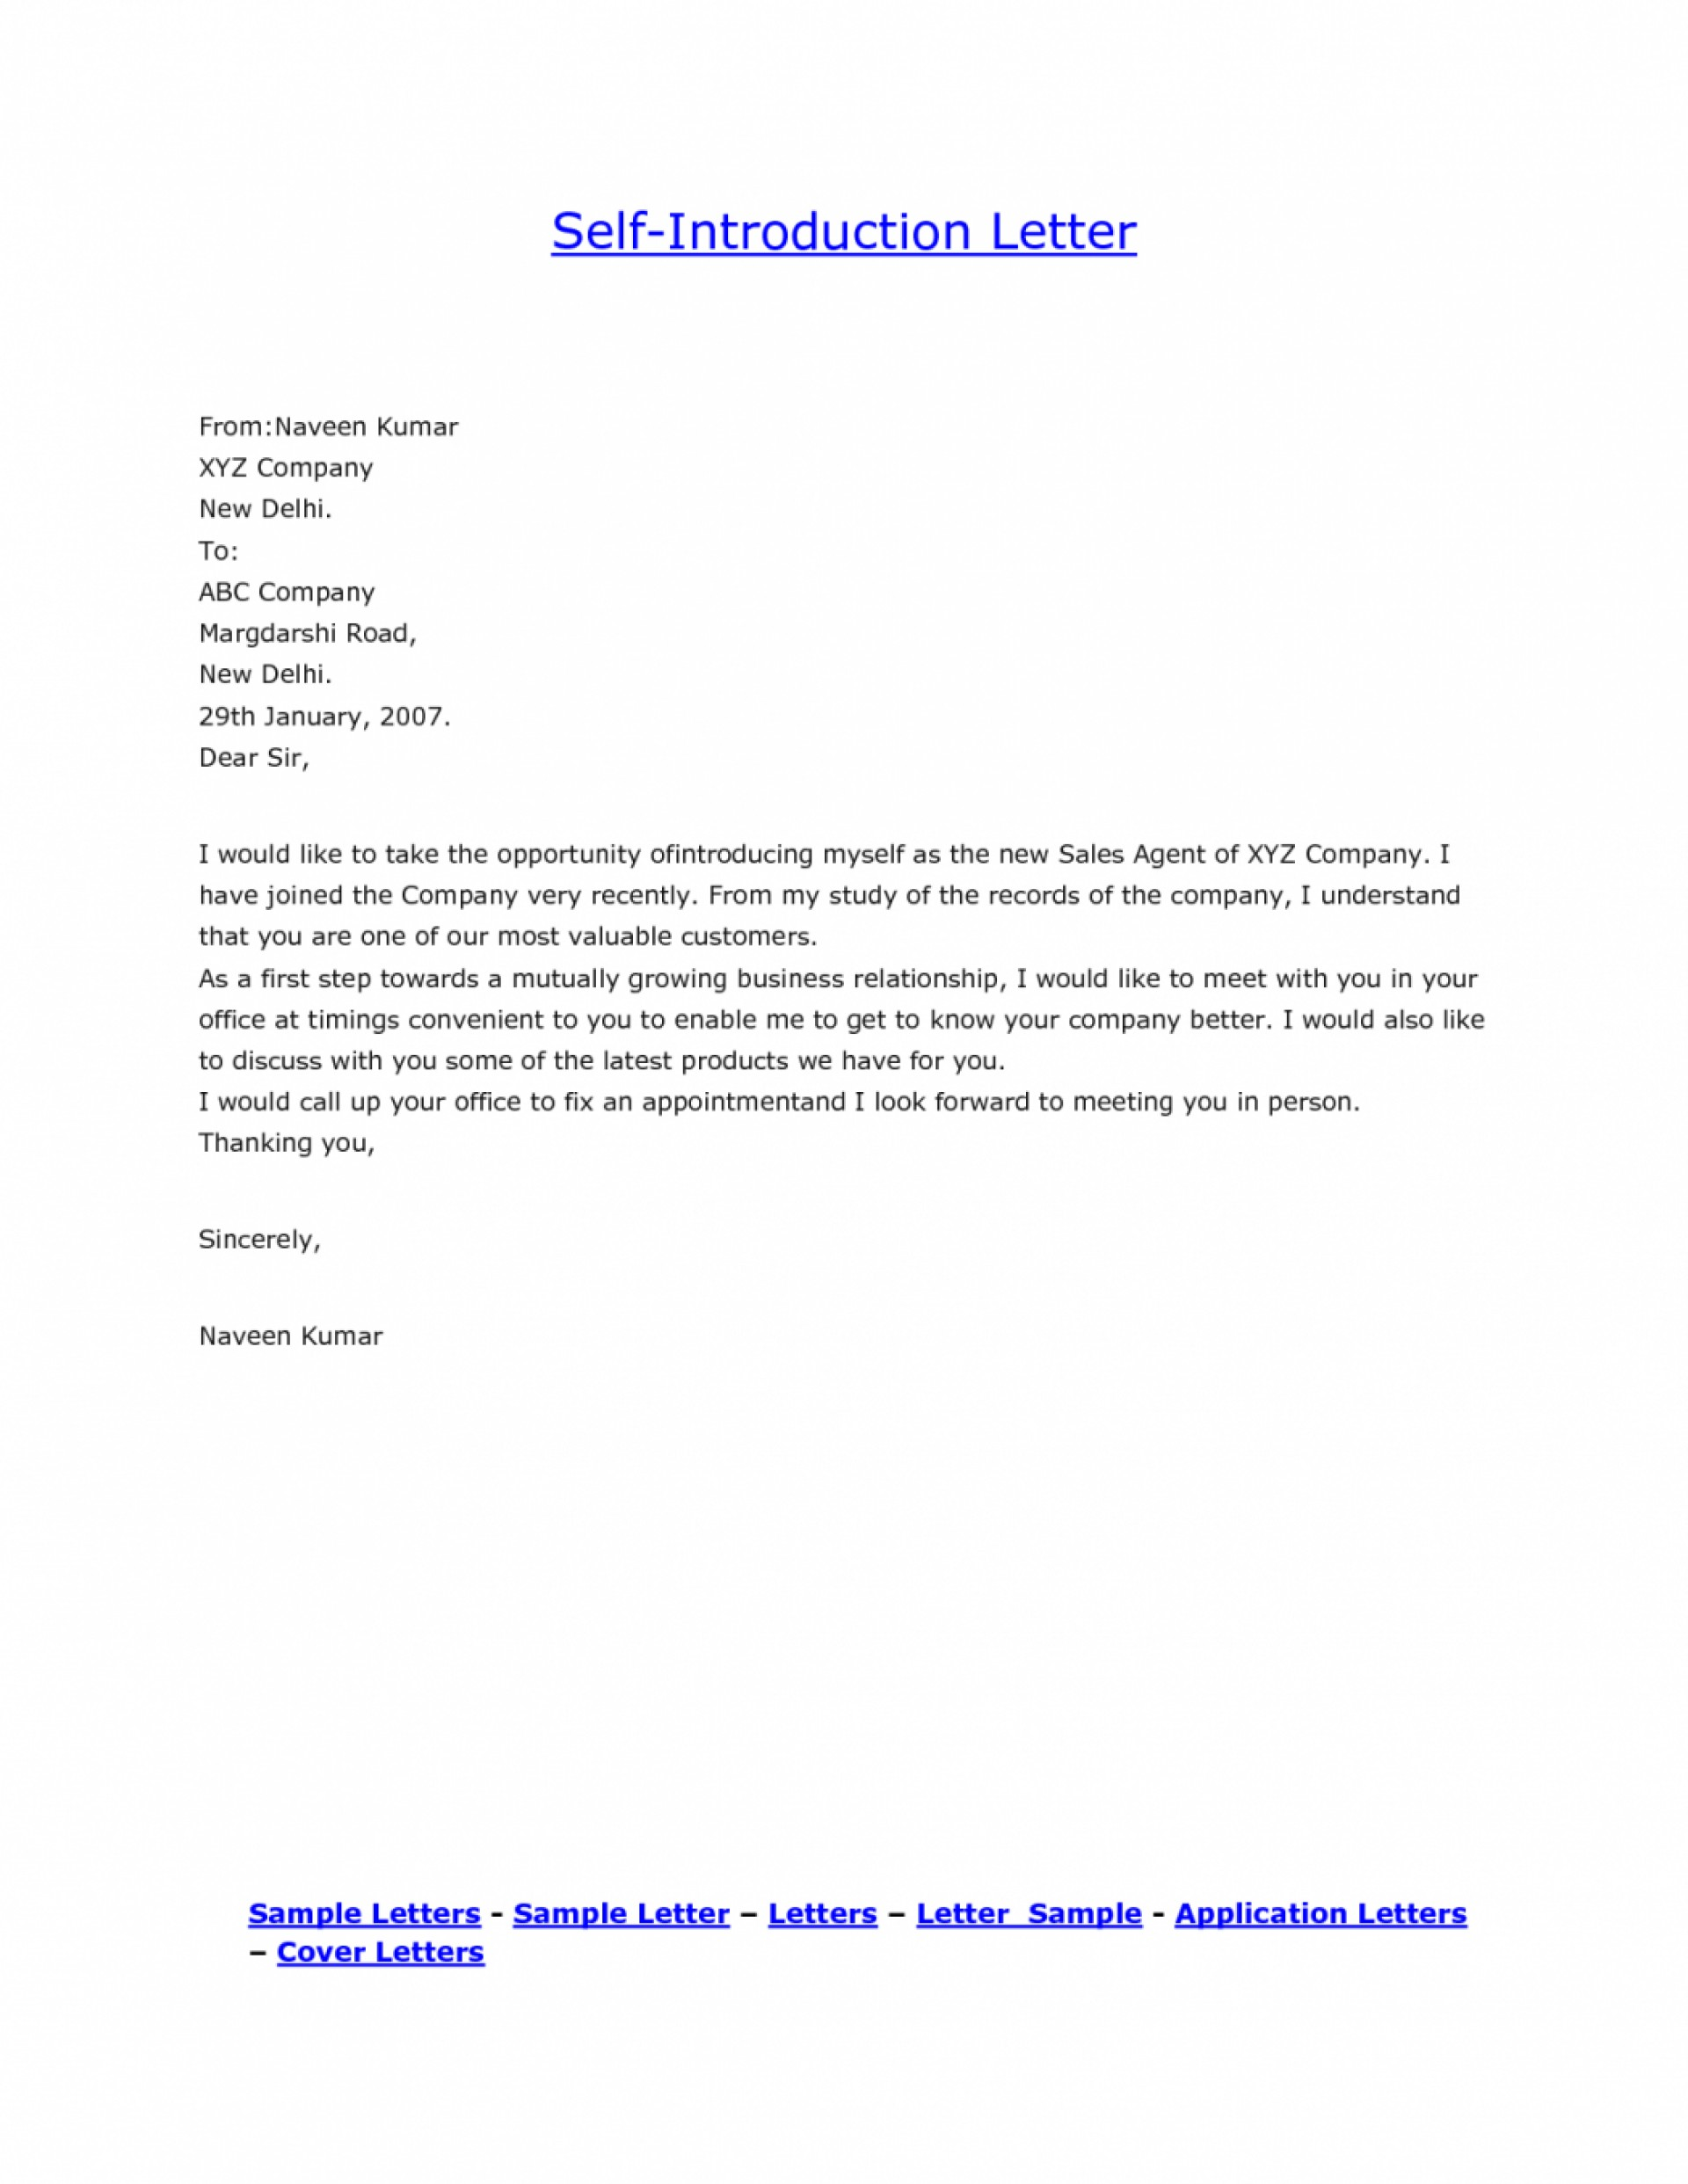 020 Introducing Myself Essay Self Introduction Introduce Personal Letter Template Sample How To Formally Yourself Via